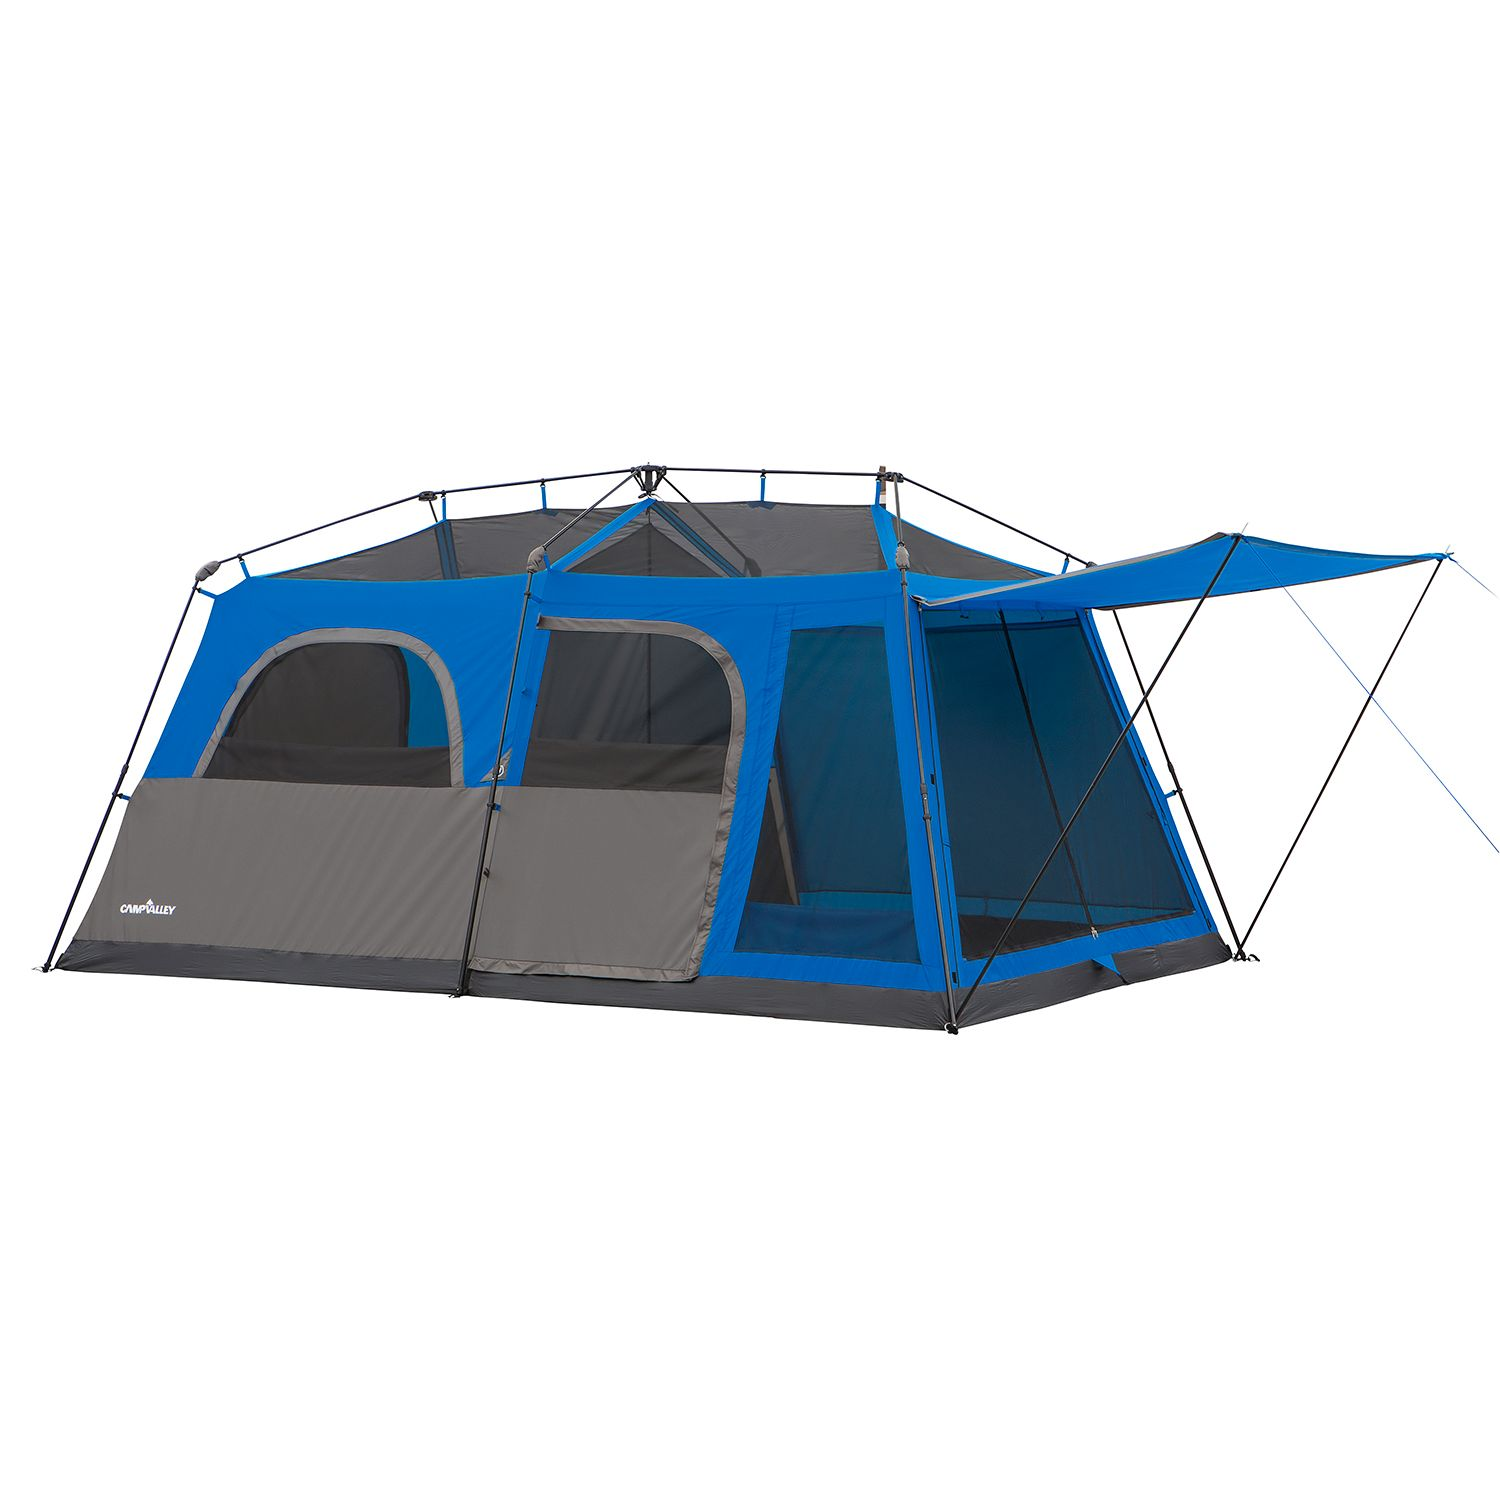 Campvalley 9 person instant cabin tent blue ebay for What is a tent cabin